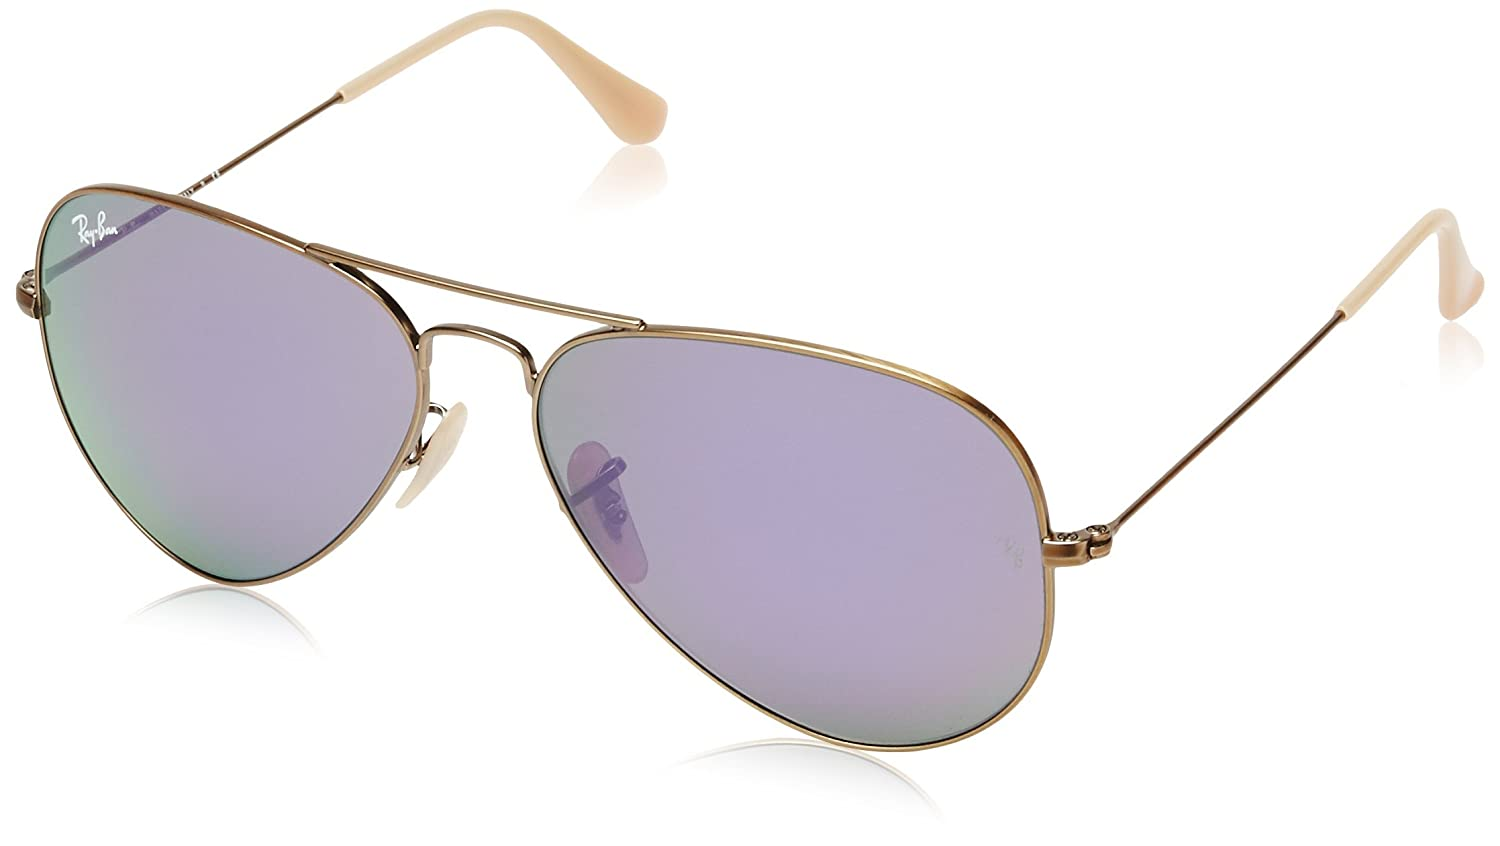 15357358306a2 Ray Ban Aviator Rb30 25 « One More Soul